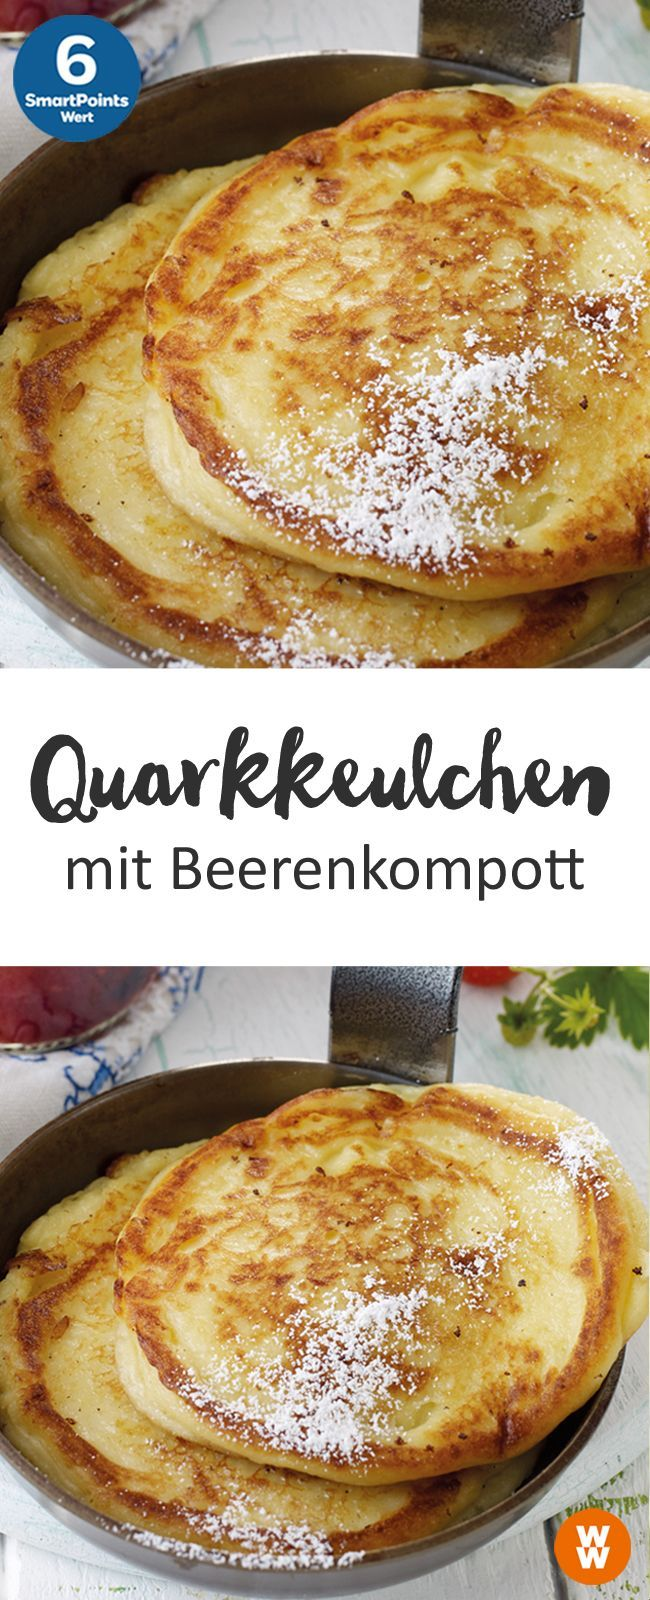 Weight Watchers Schnelle Küche 17 Best Images About Ww Rezept On Pinterest Weights Recipe And